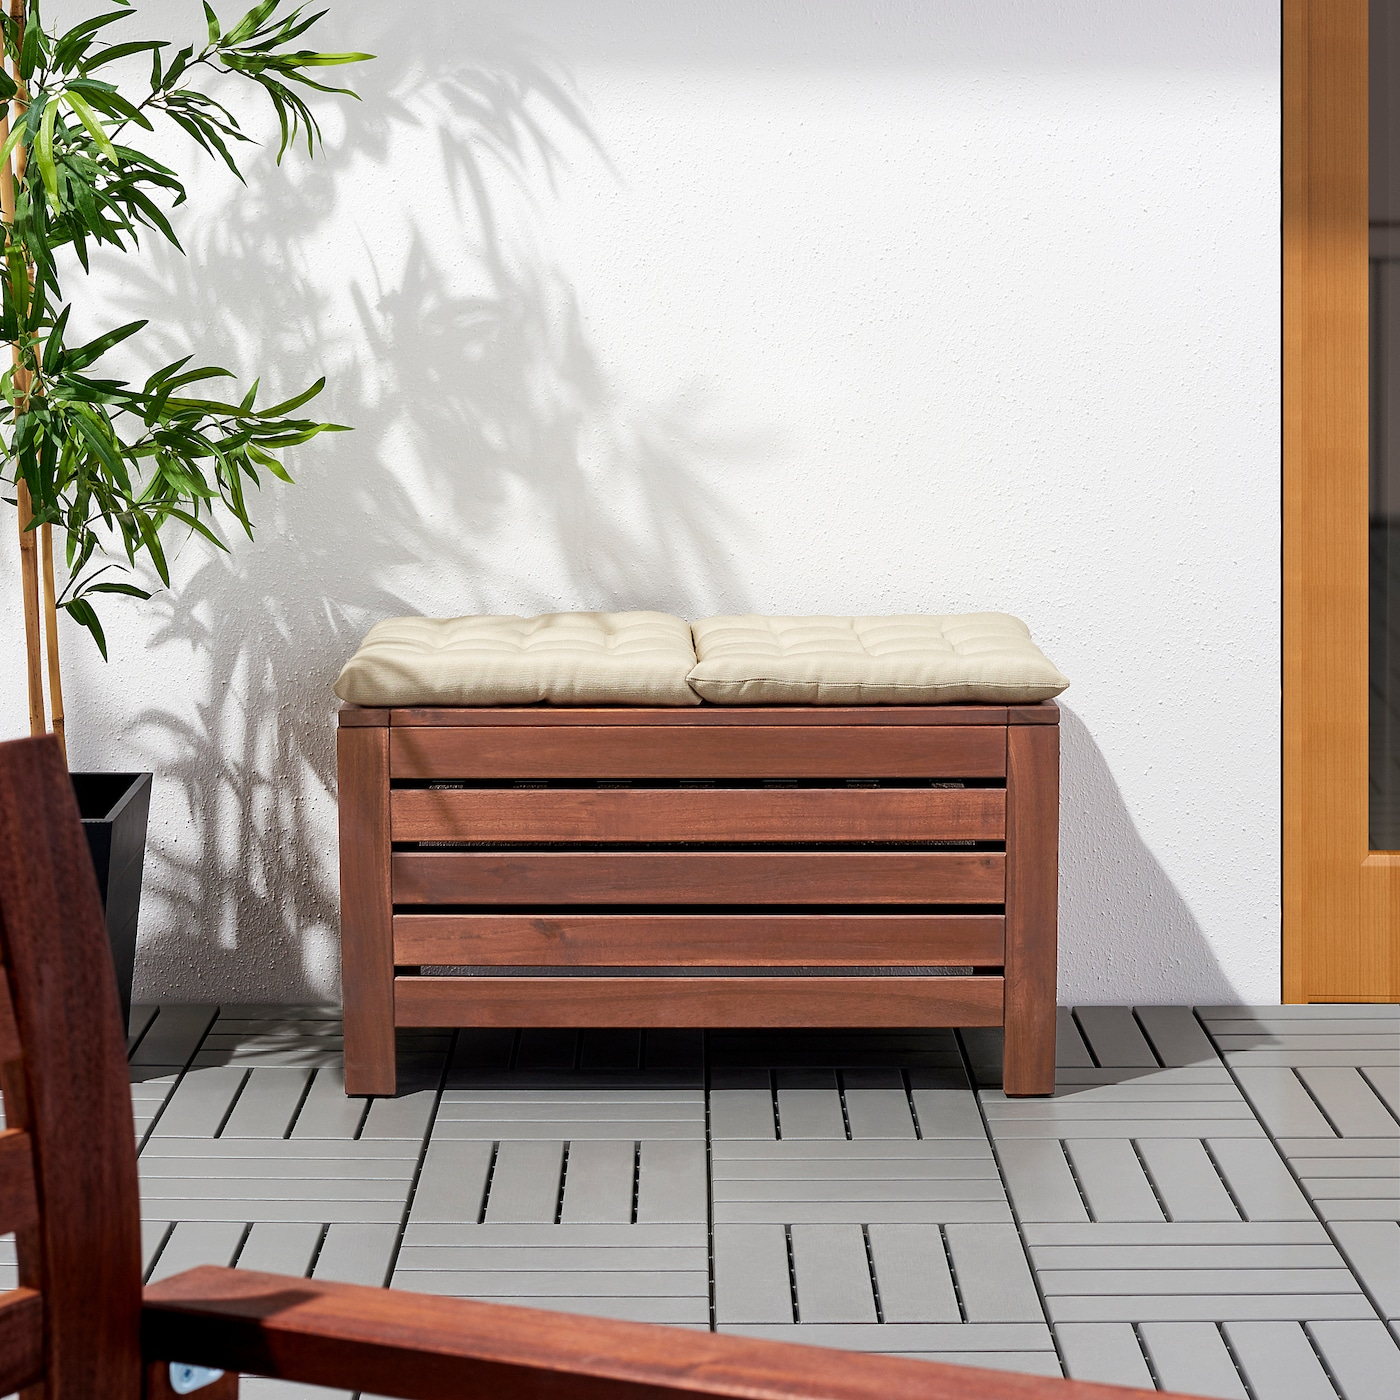 Applaro Storage Bench Outdoor Brown Stained Brown Width 31 1 2 Ikea